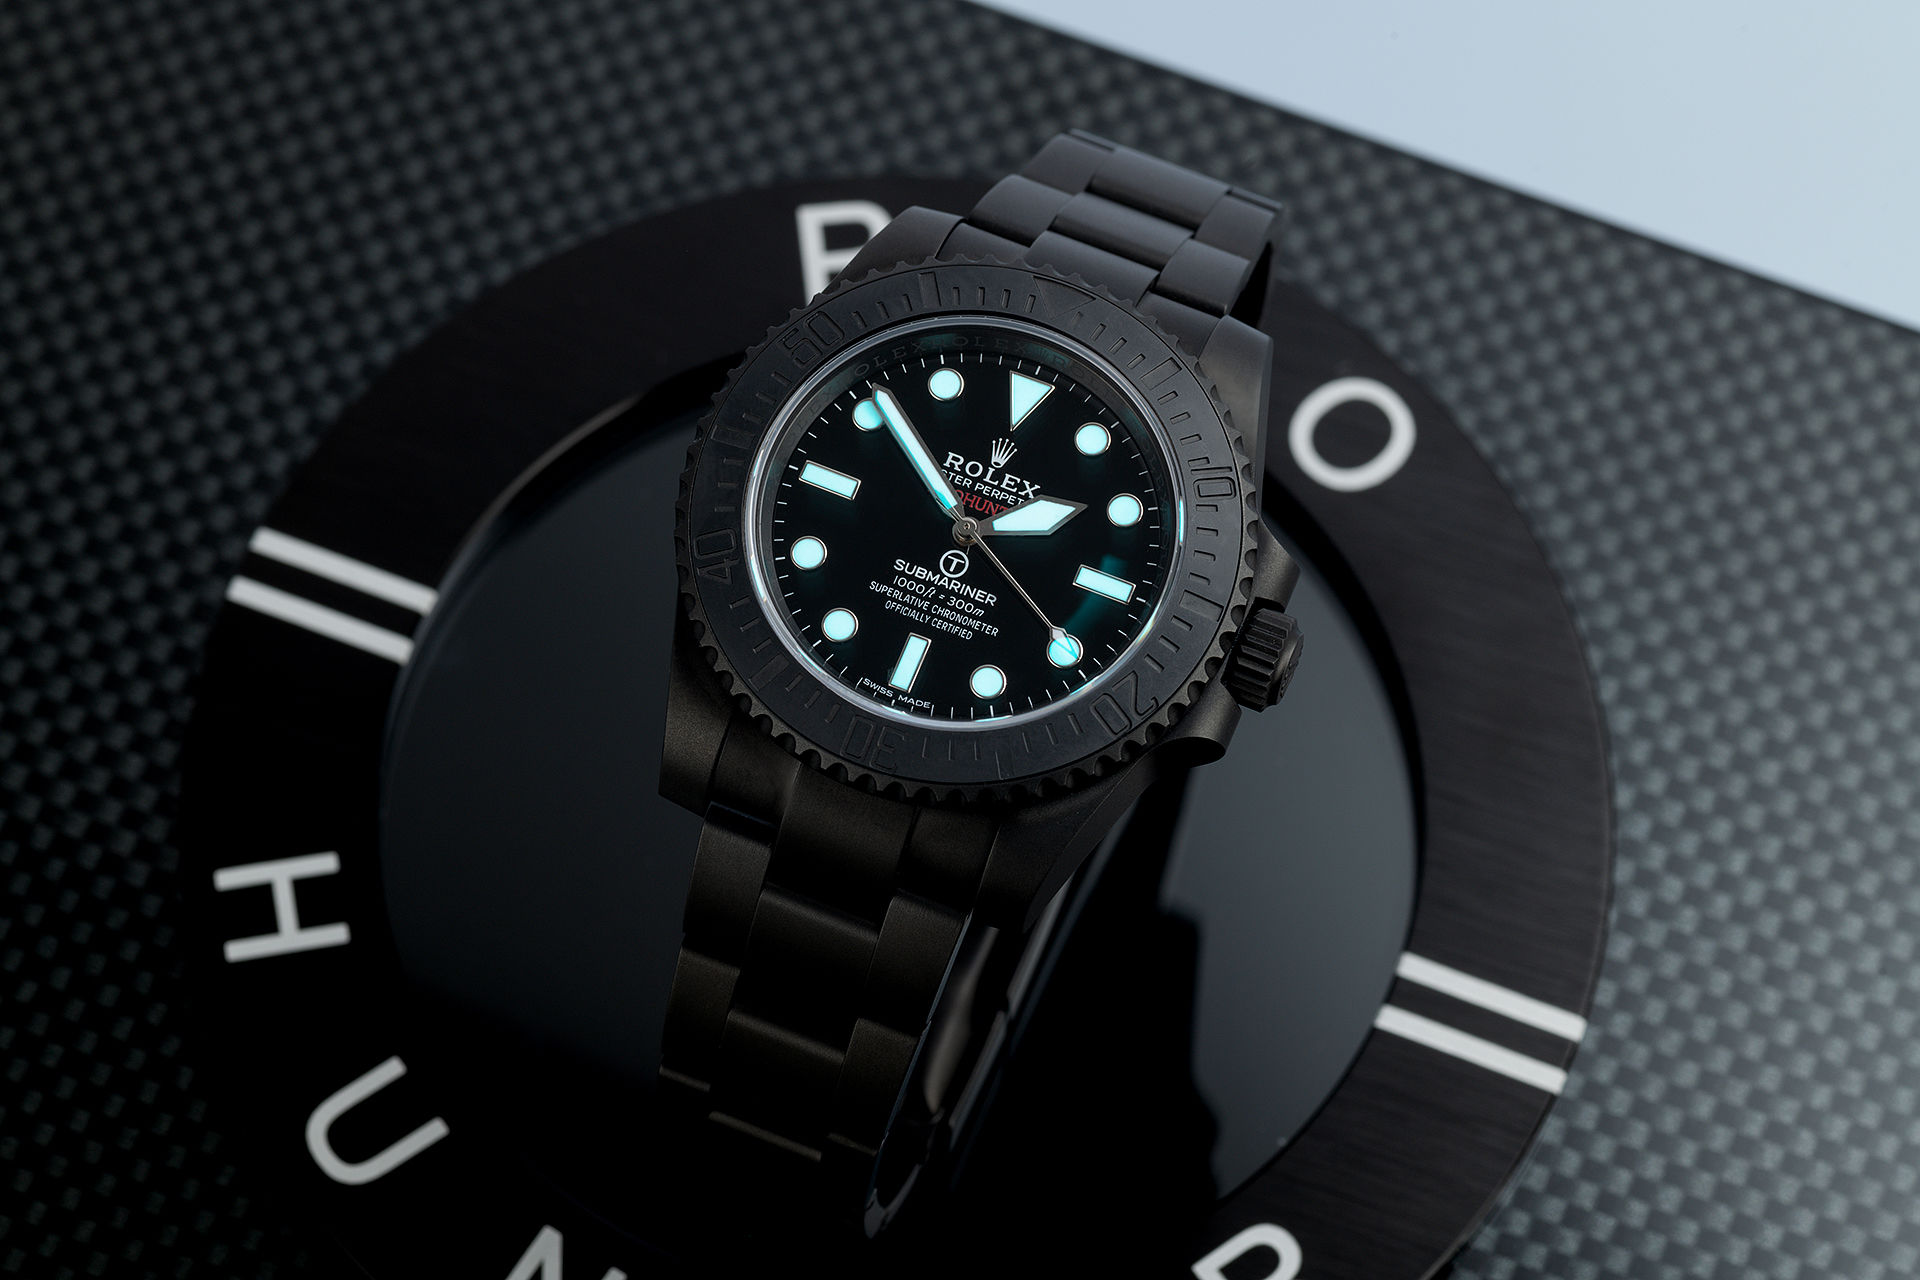 ref 114060 | One of 100 'Stealth' | Pro Hunter Submariner